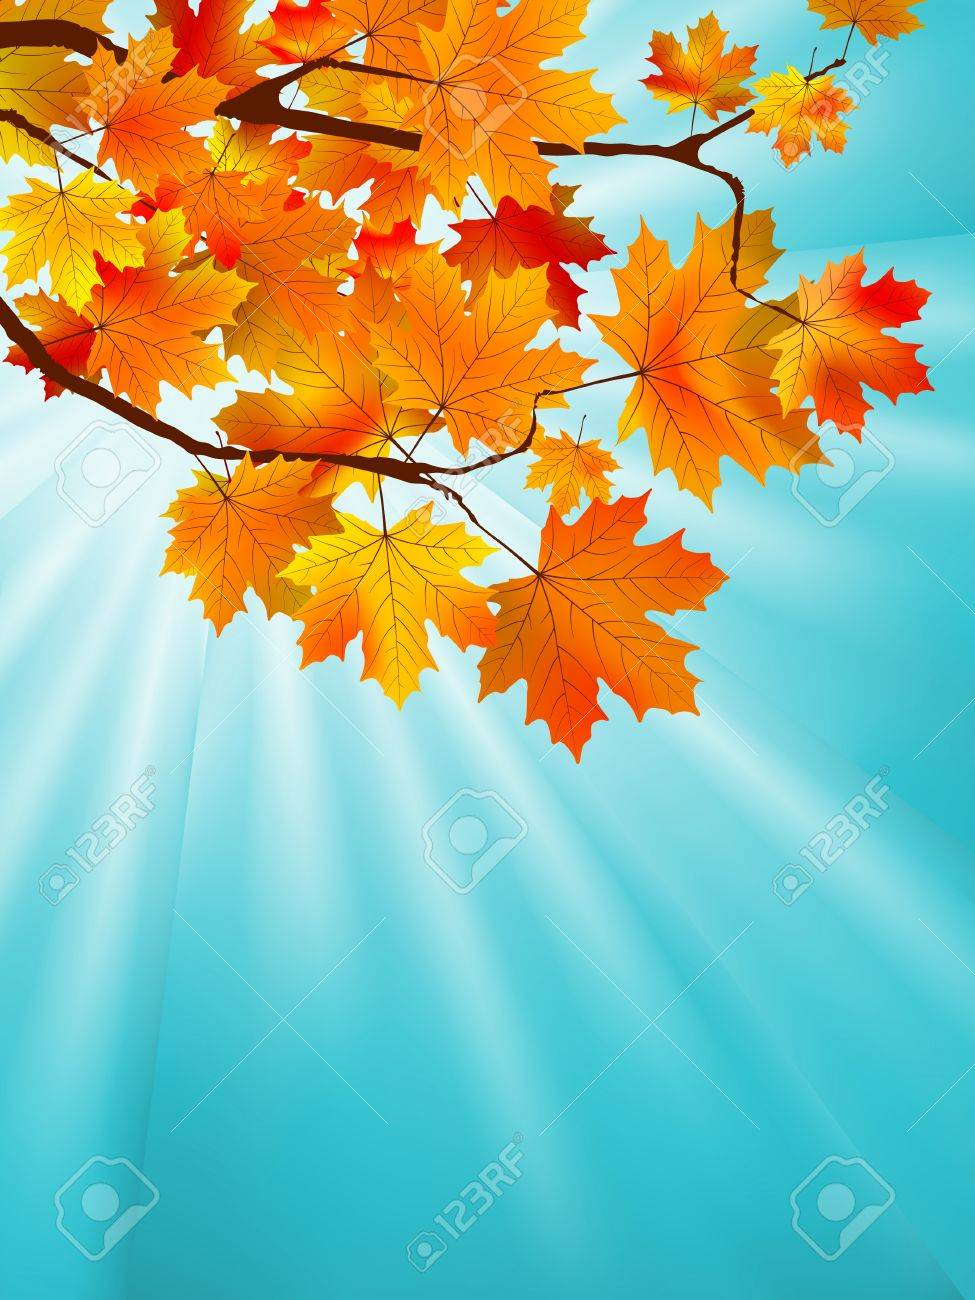 Red yellow fall maple leafs over the blue sky. Stock Vector - 9714078